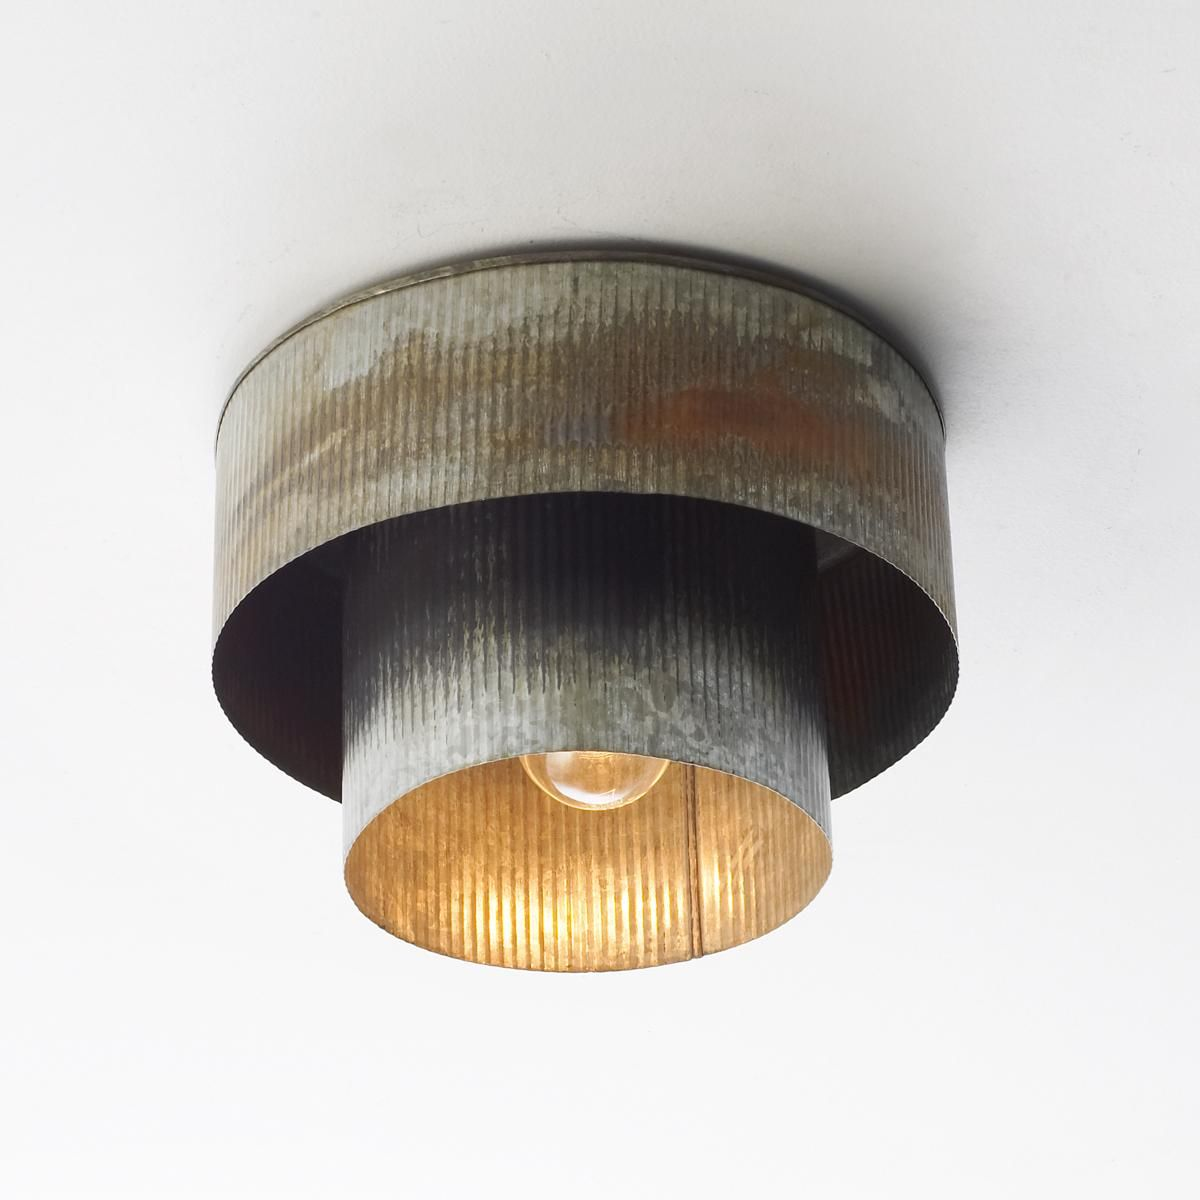 Large Drum Ceiling Fan: Corrugated Tin Drum Ceiling Light